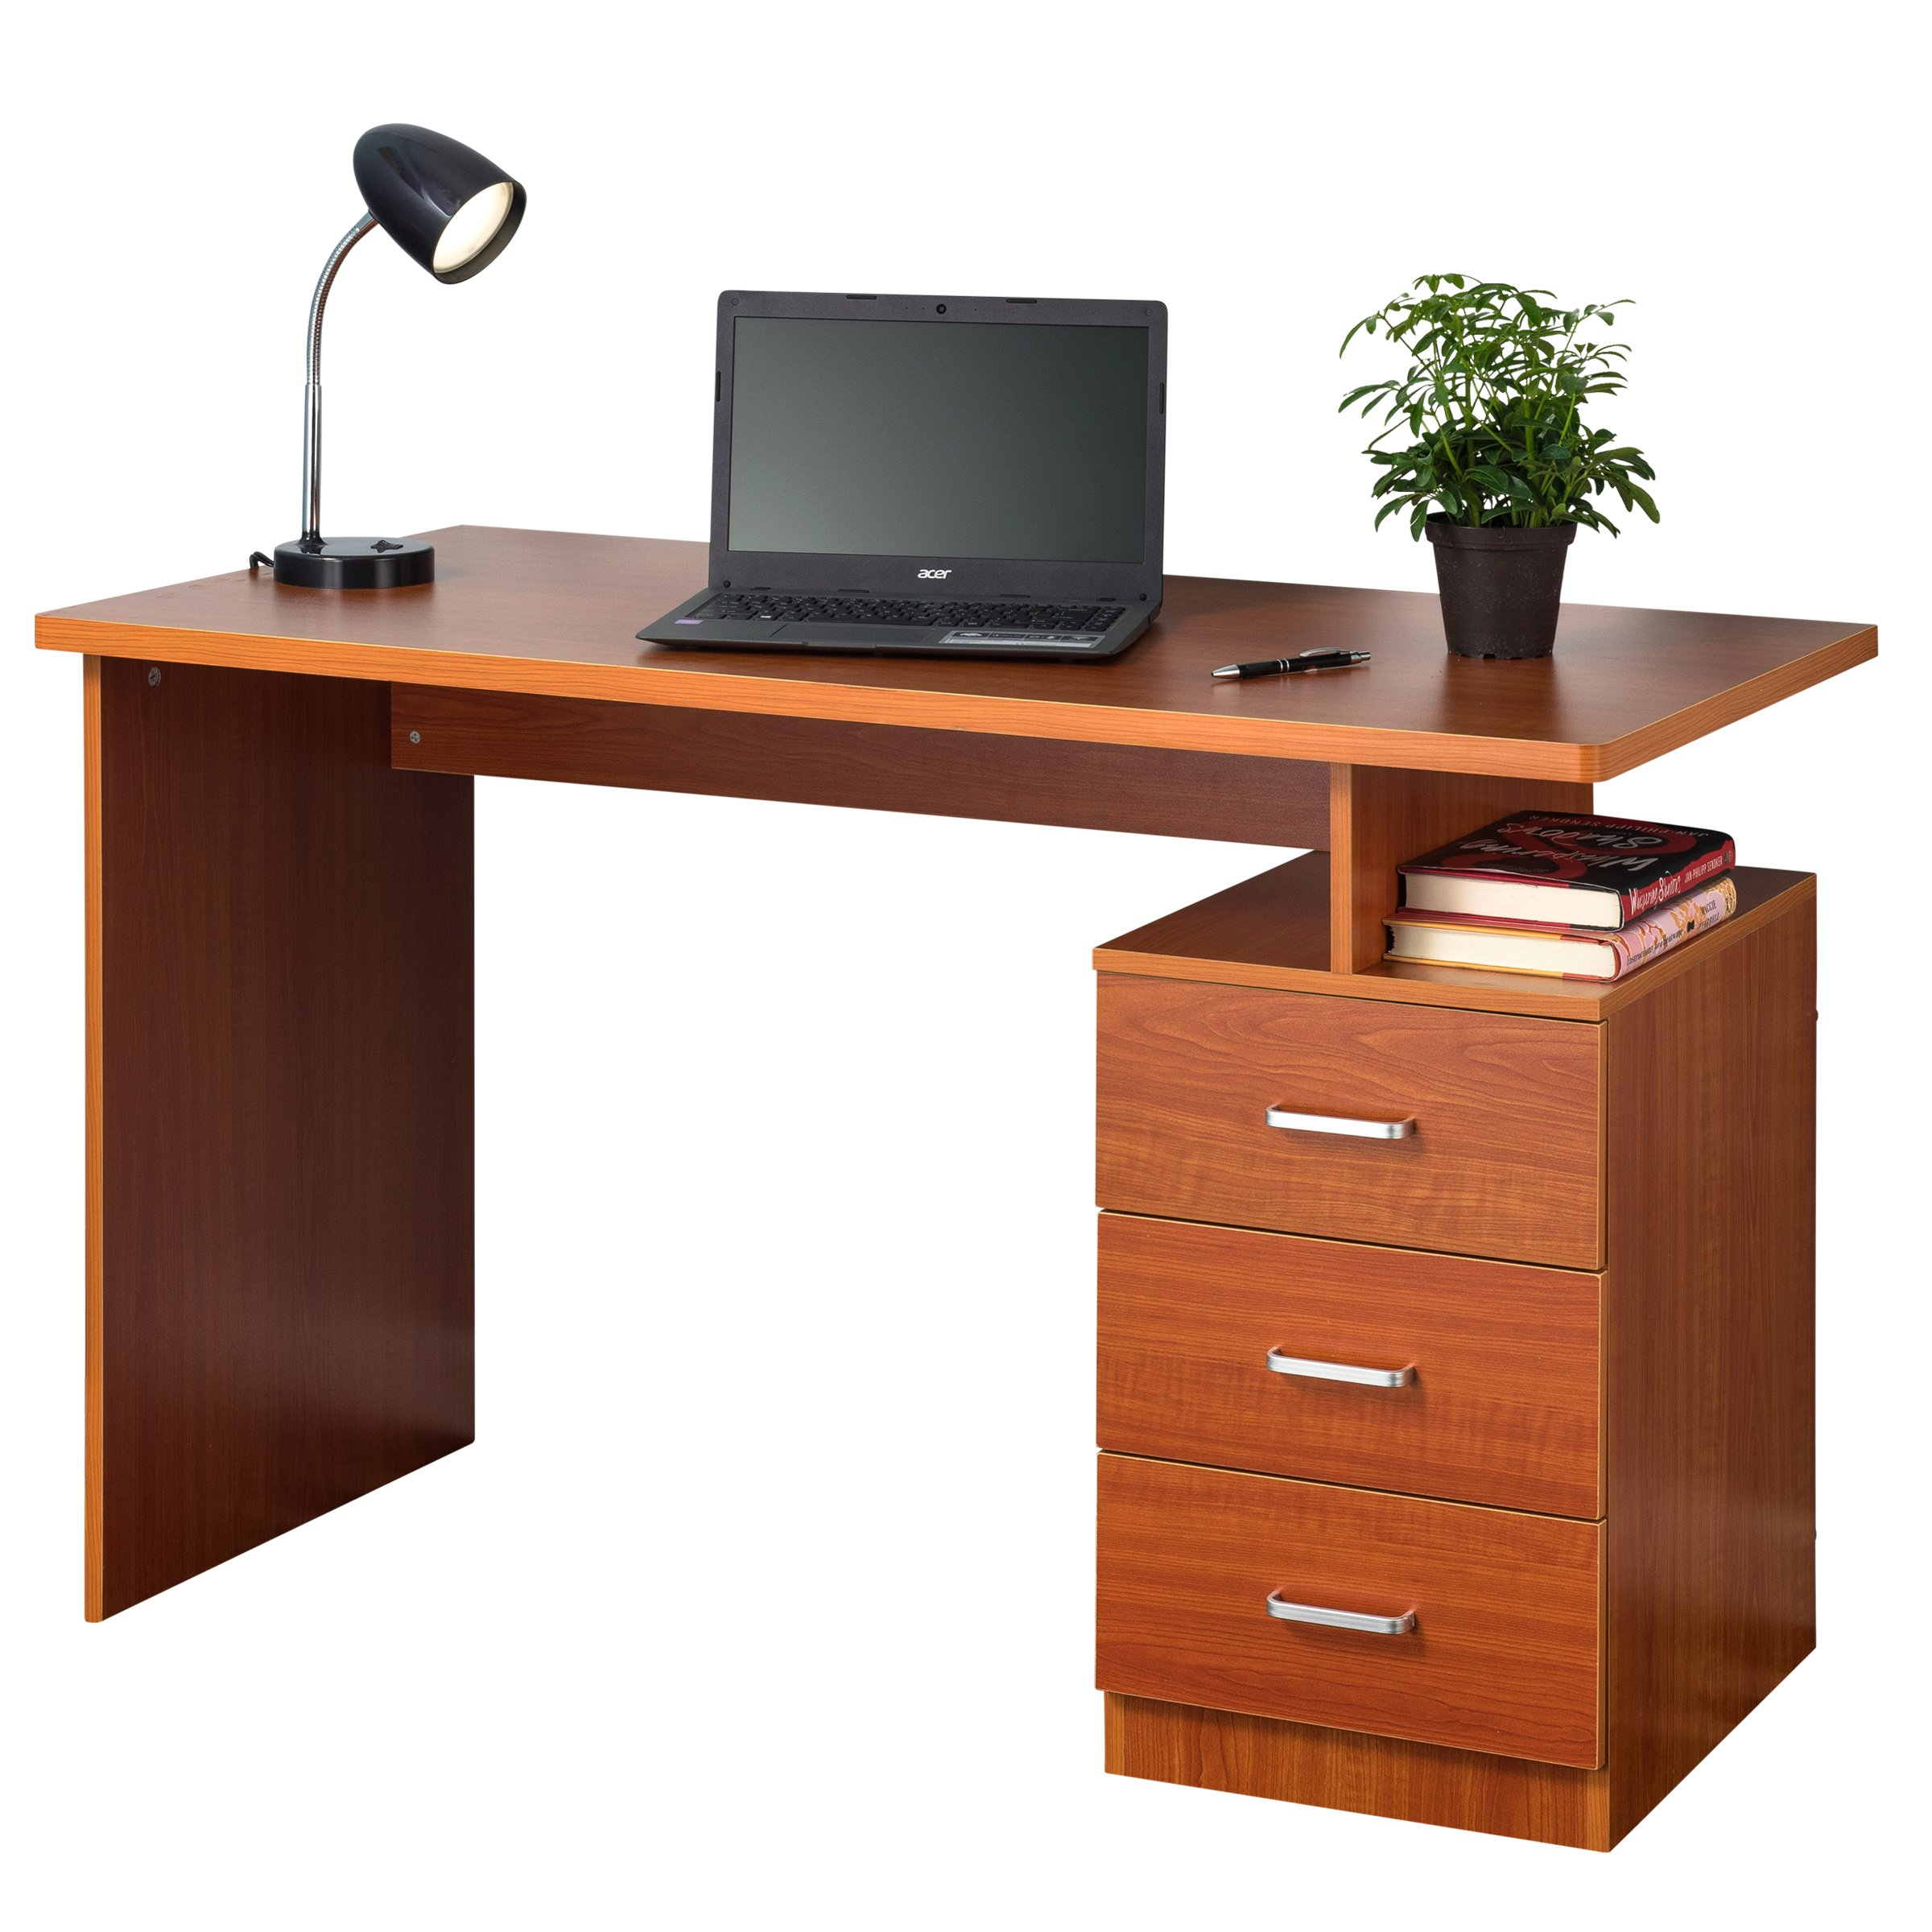 Fineboard Home Office Desk with 3 Drawers, Cherry Finish